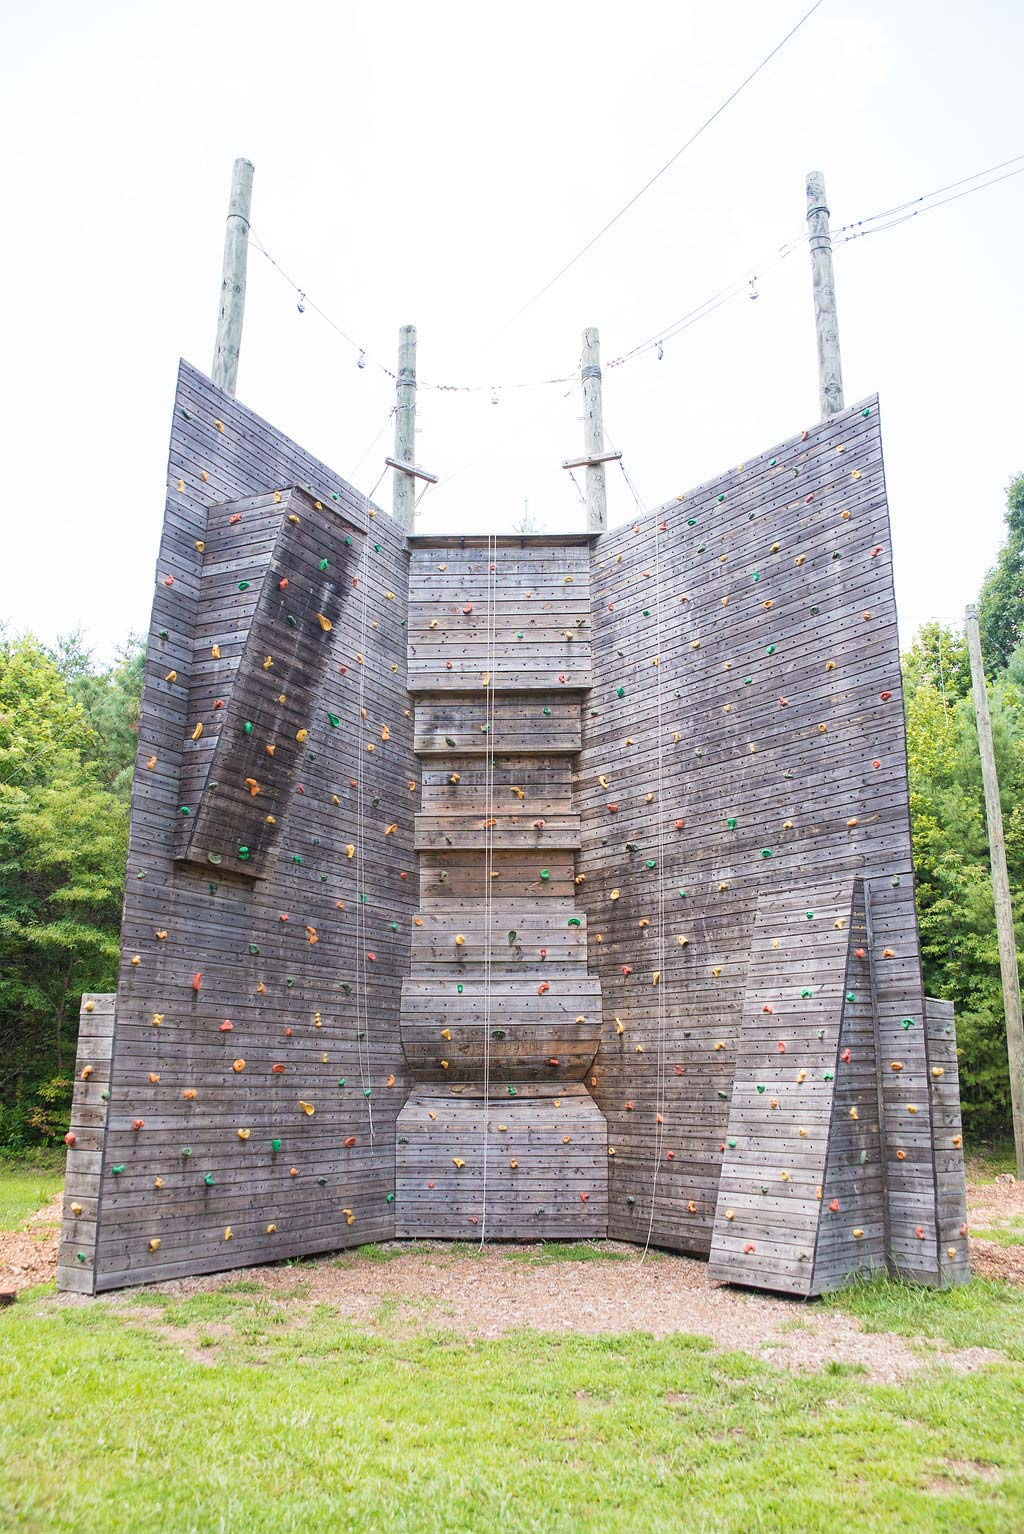 Camp-Wayfarer-Climbing-Tower.jpg